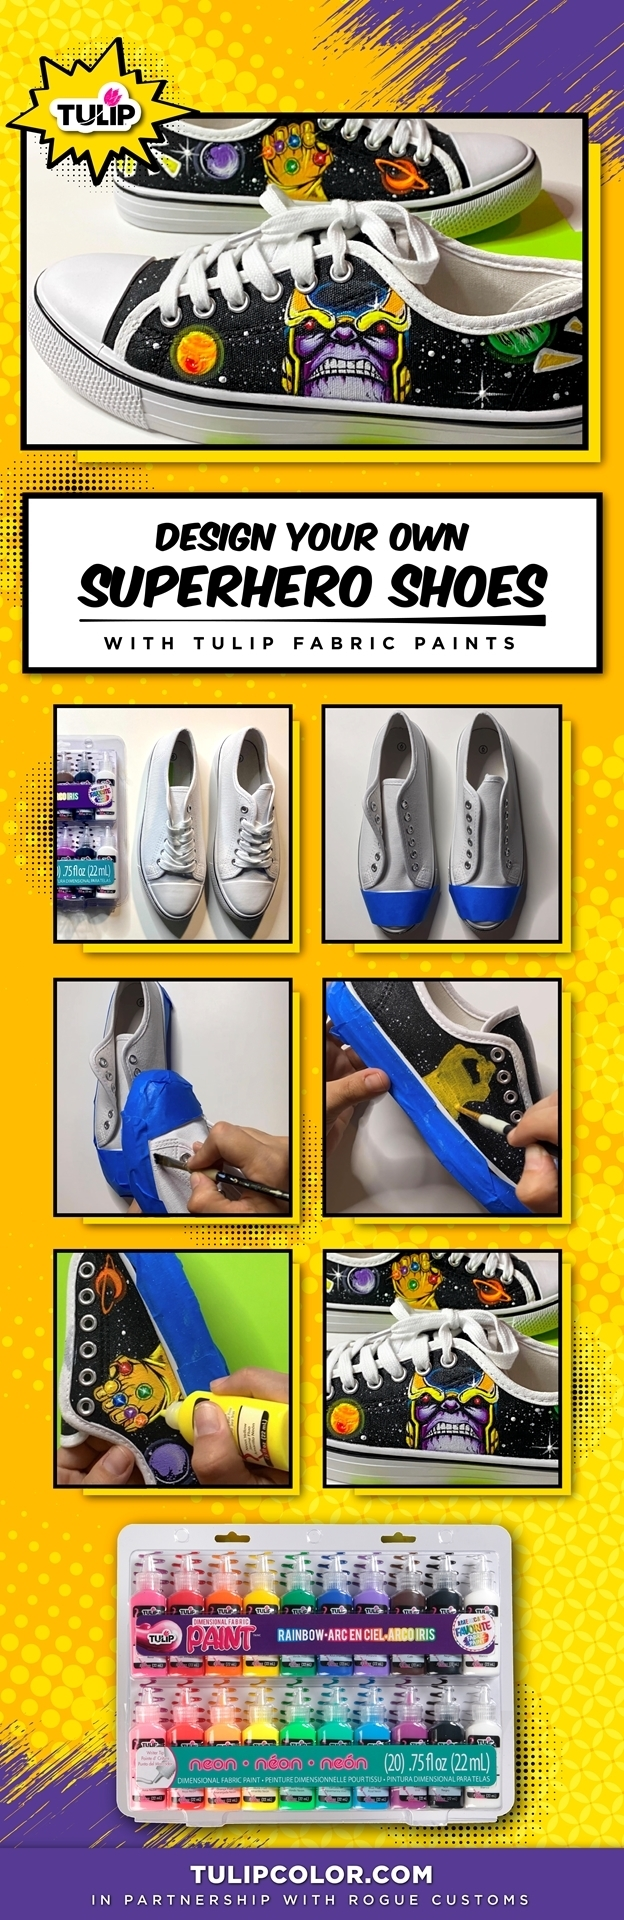 Design Your Own Superhero Shoes with Fabric Paint